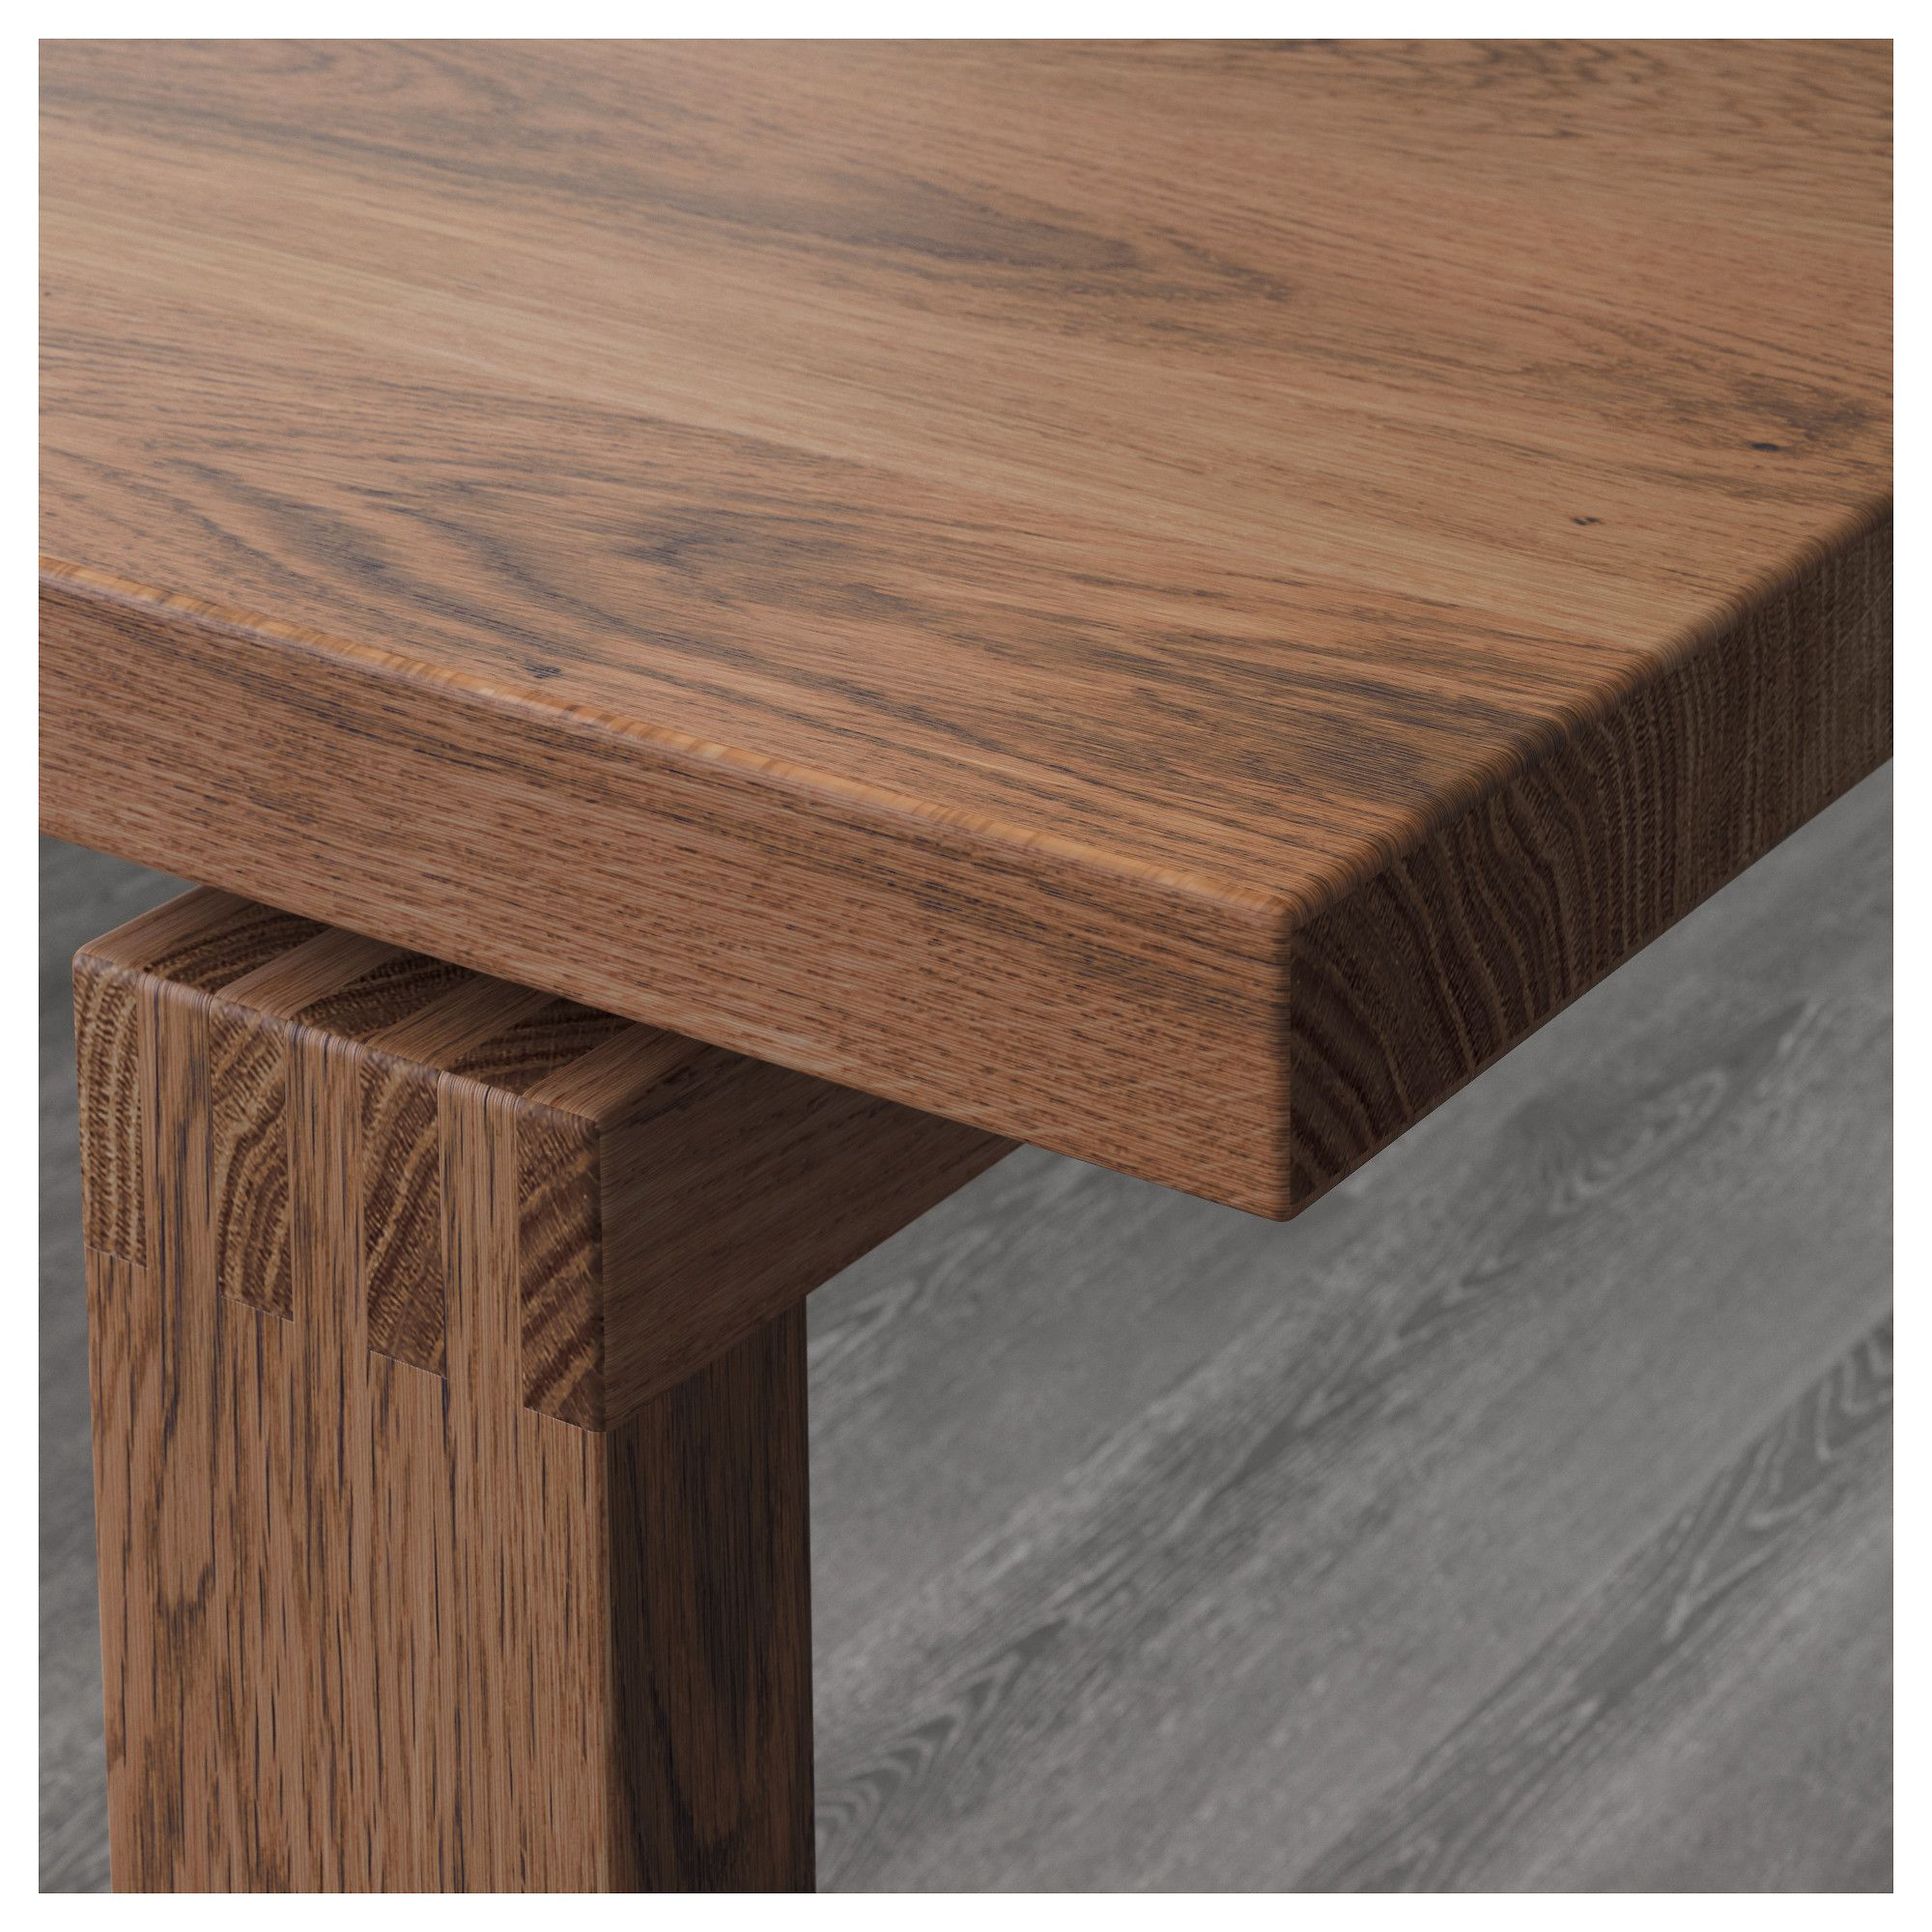 Ikea Esstisch Norden 220 Ikea Morbylanga Bernhard Oak Veneer Brown Stained Mjuk